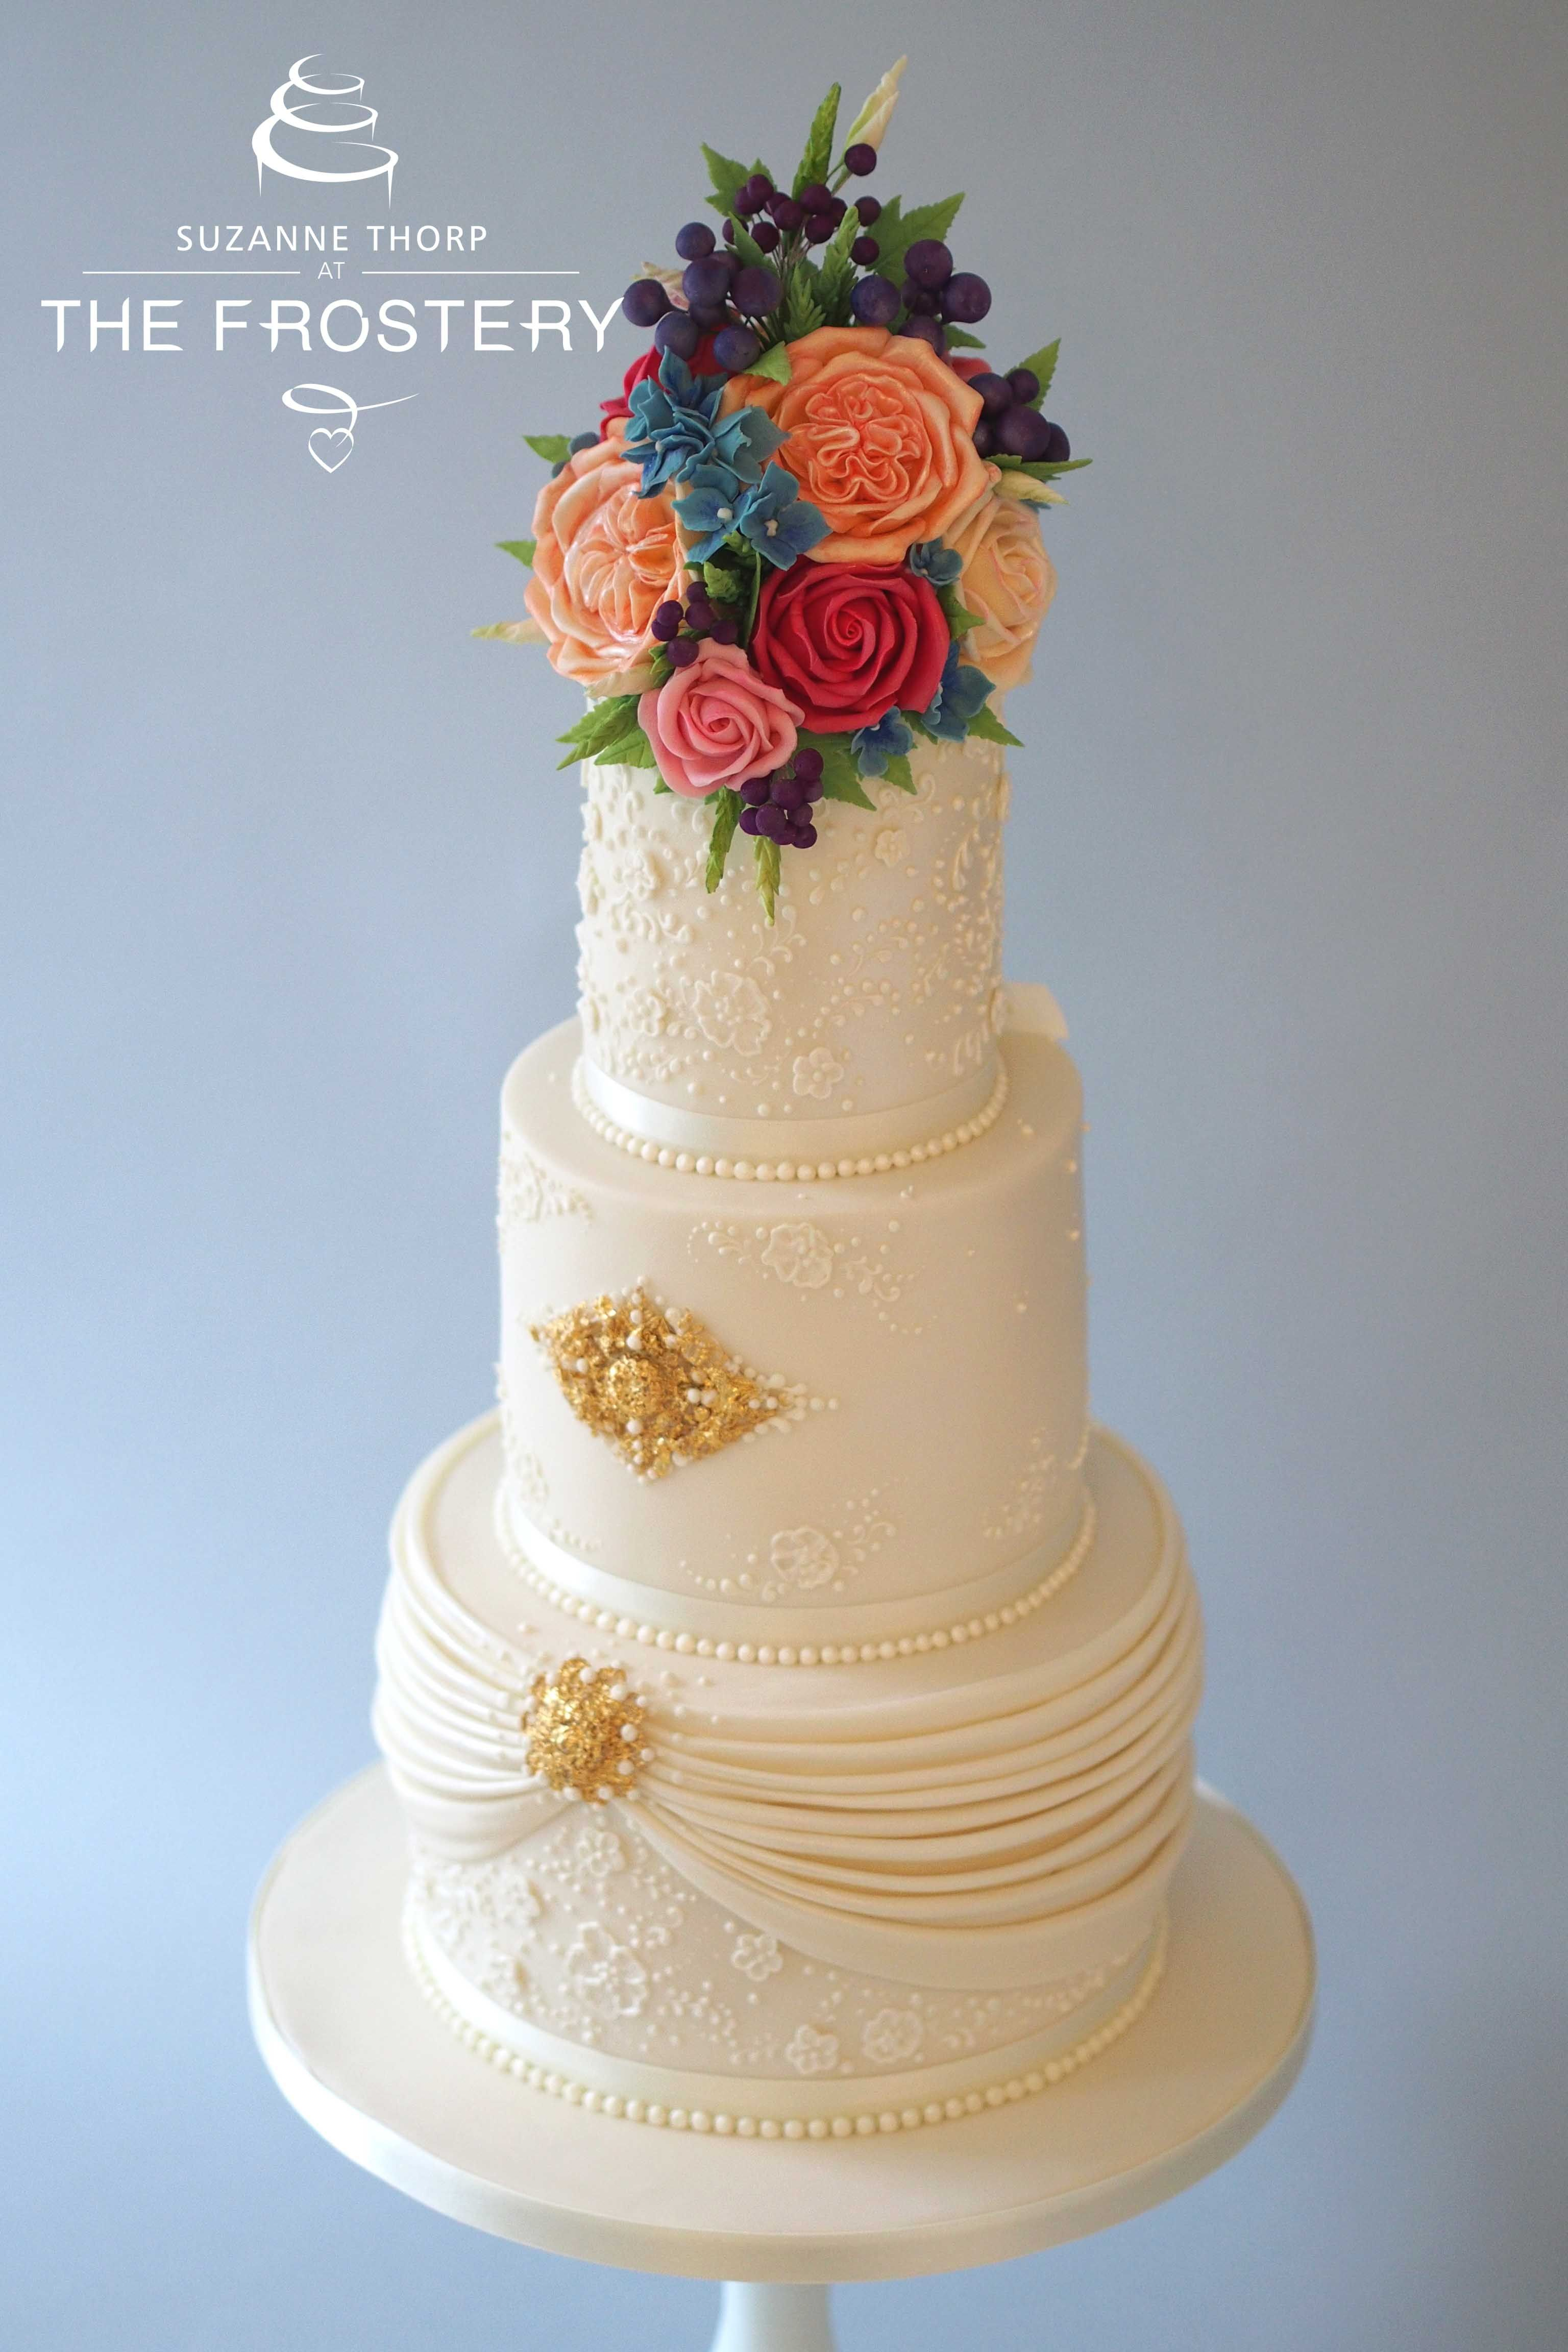 Three Tier Wedding Cake Topped With Sugar Flowers In Bright And Bold Exotic Hues At Peckforton